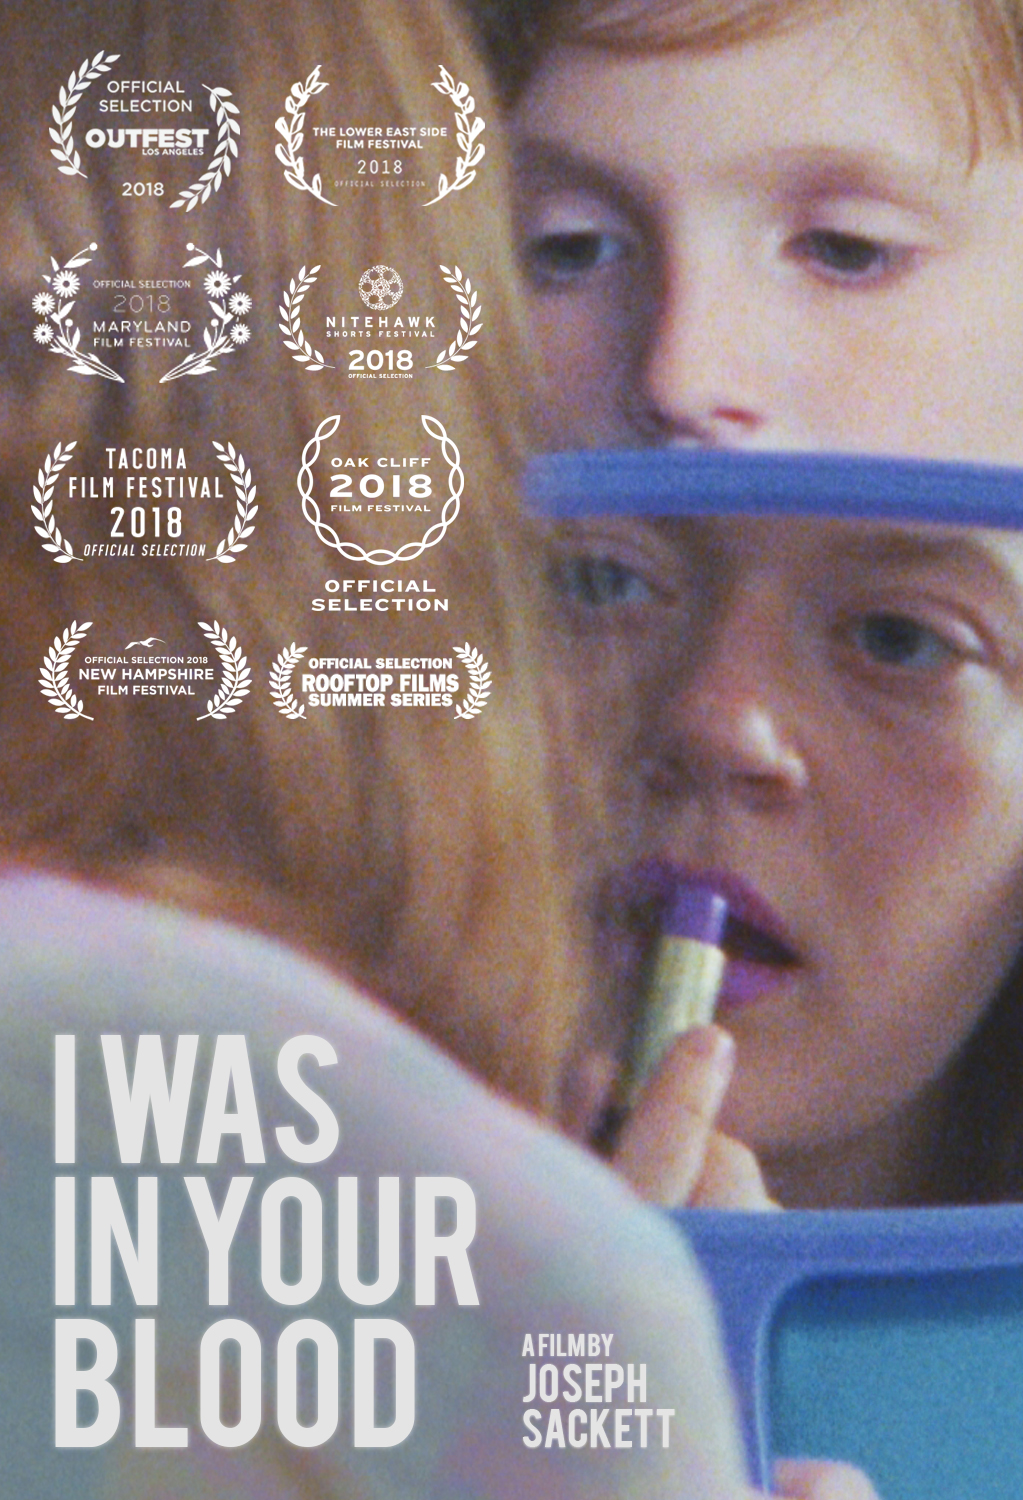 I_Was_In_Your_Blood_Poster_C.jpg